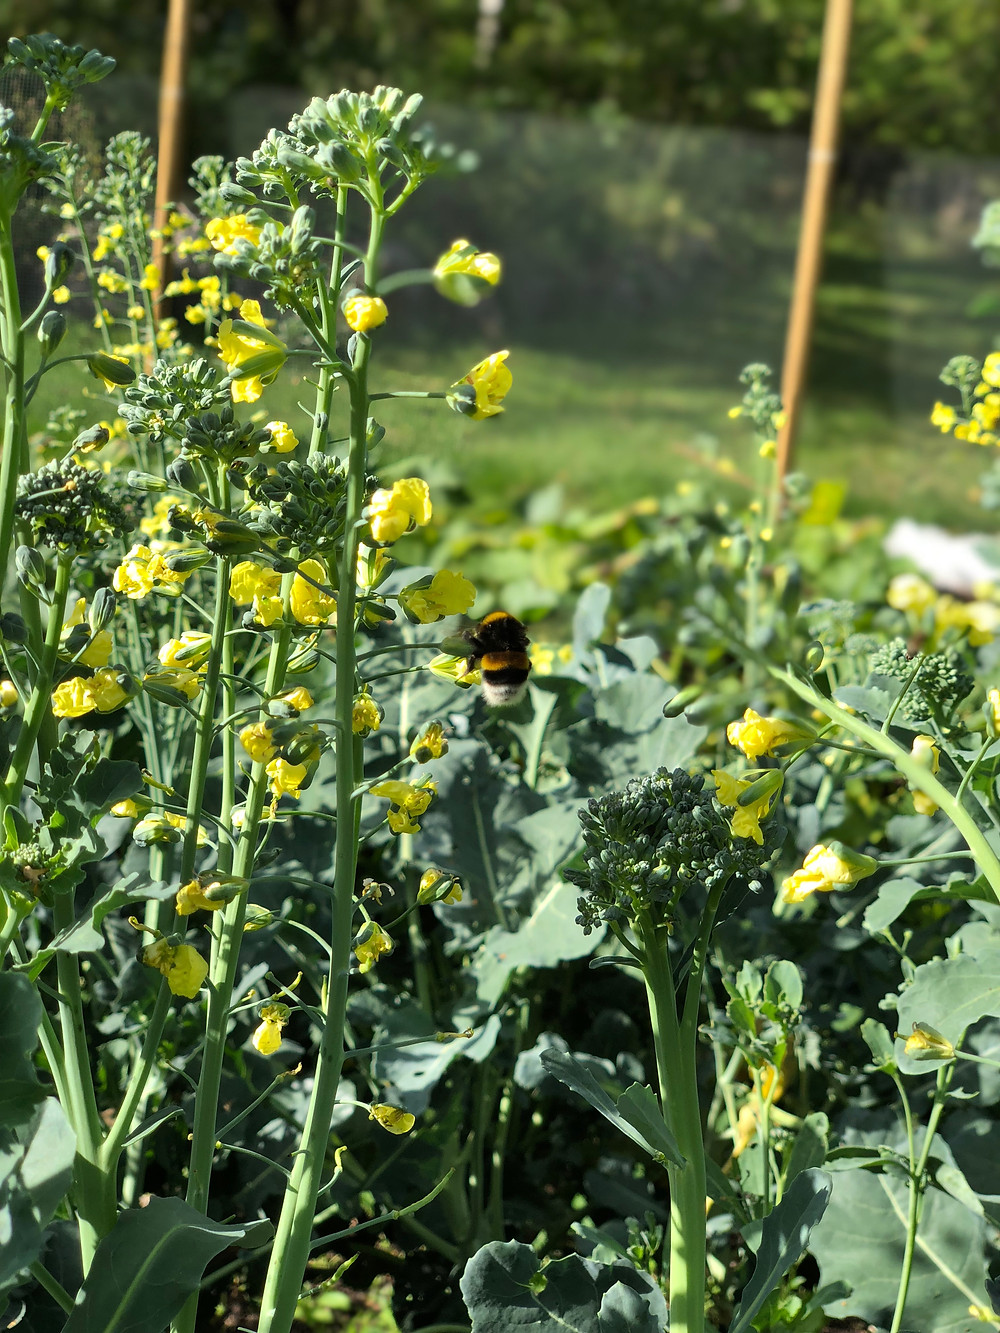 Bumblebees and broccoli